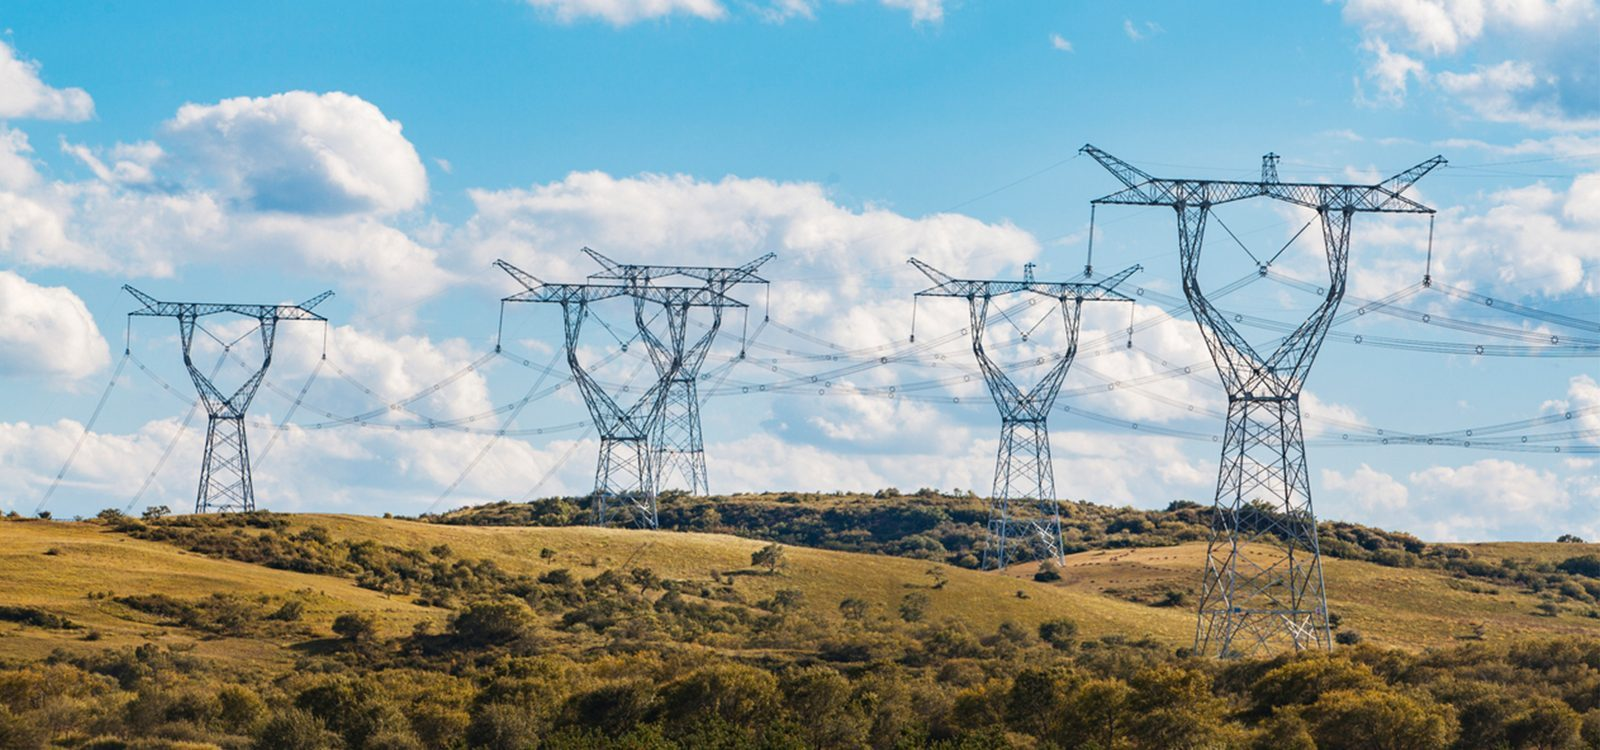 An introduction to energy markets and some of the actuaries working within the sector